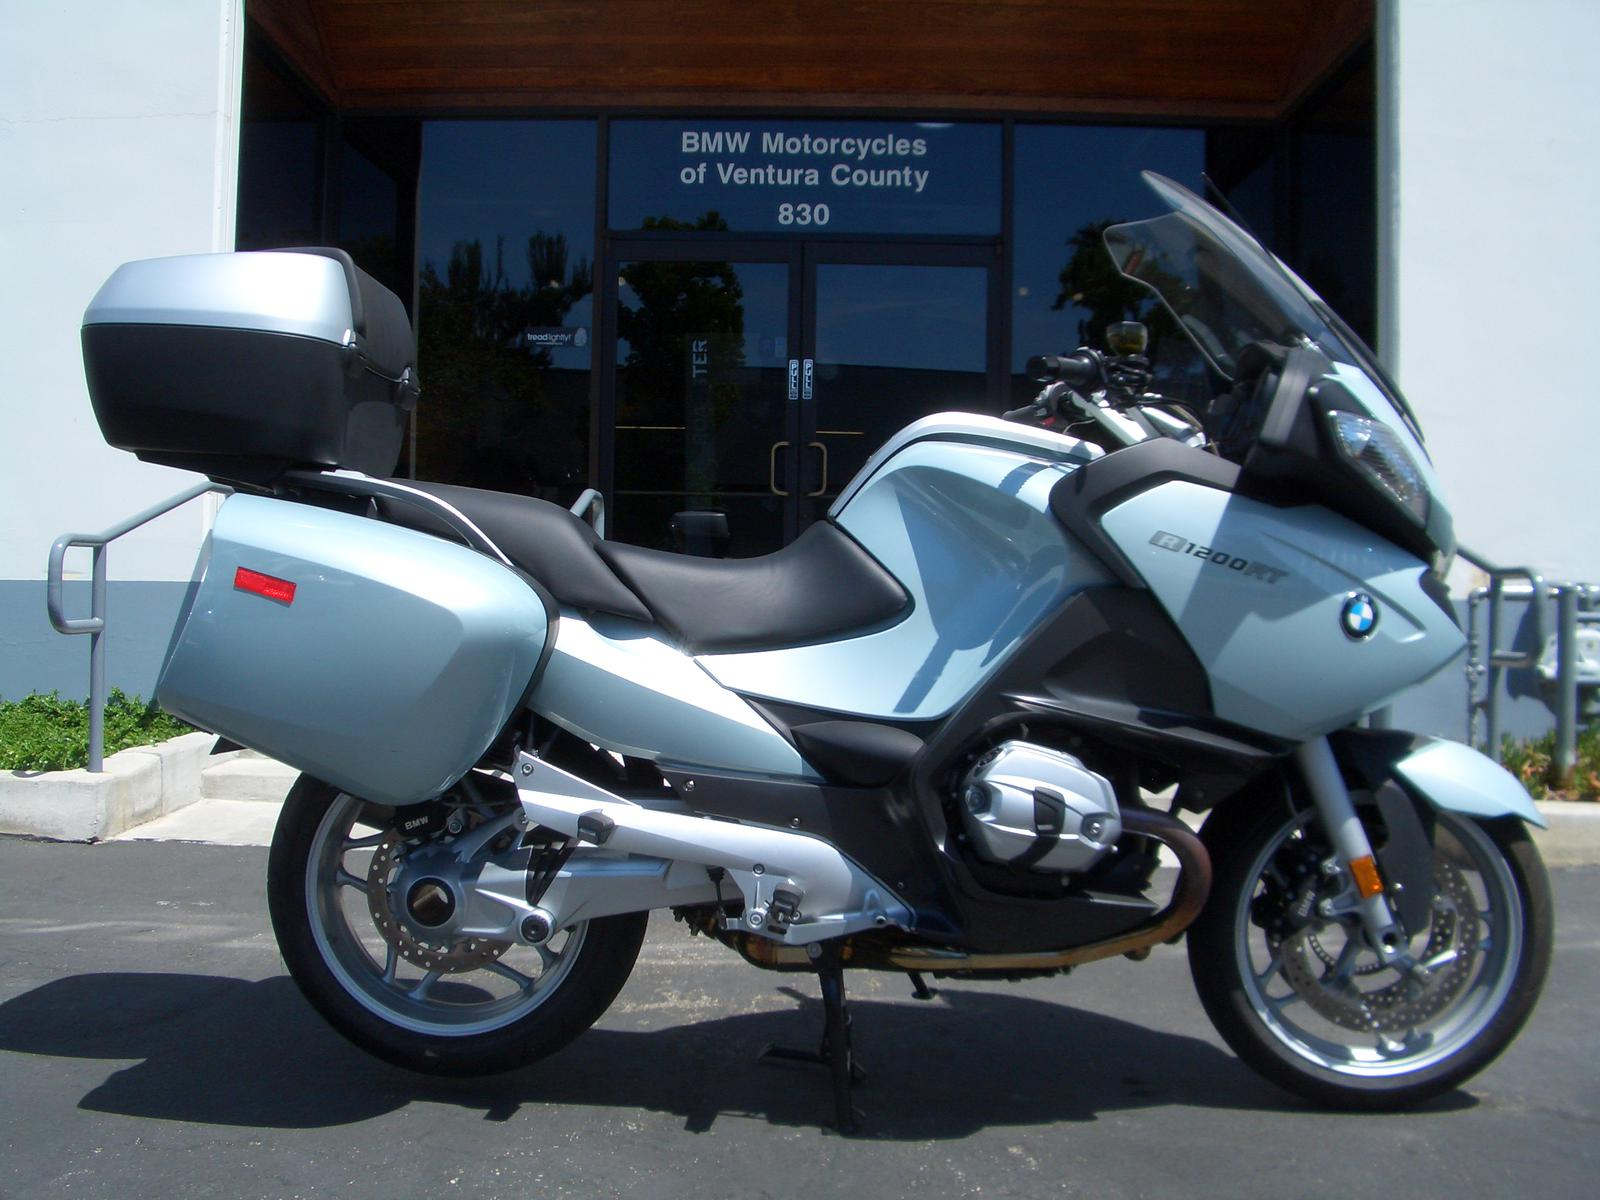 2010 BMW R 1200 RT, motorcycle listing